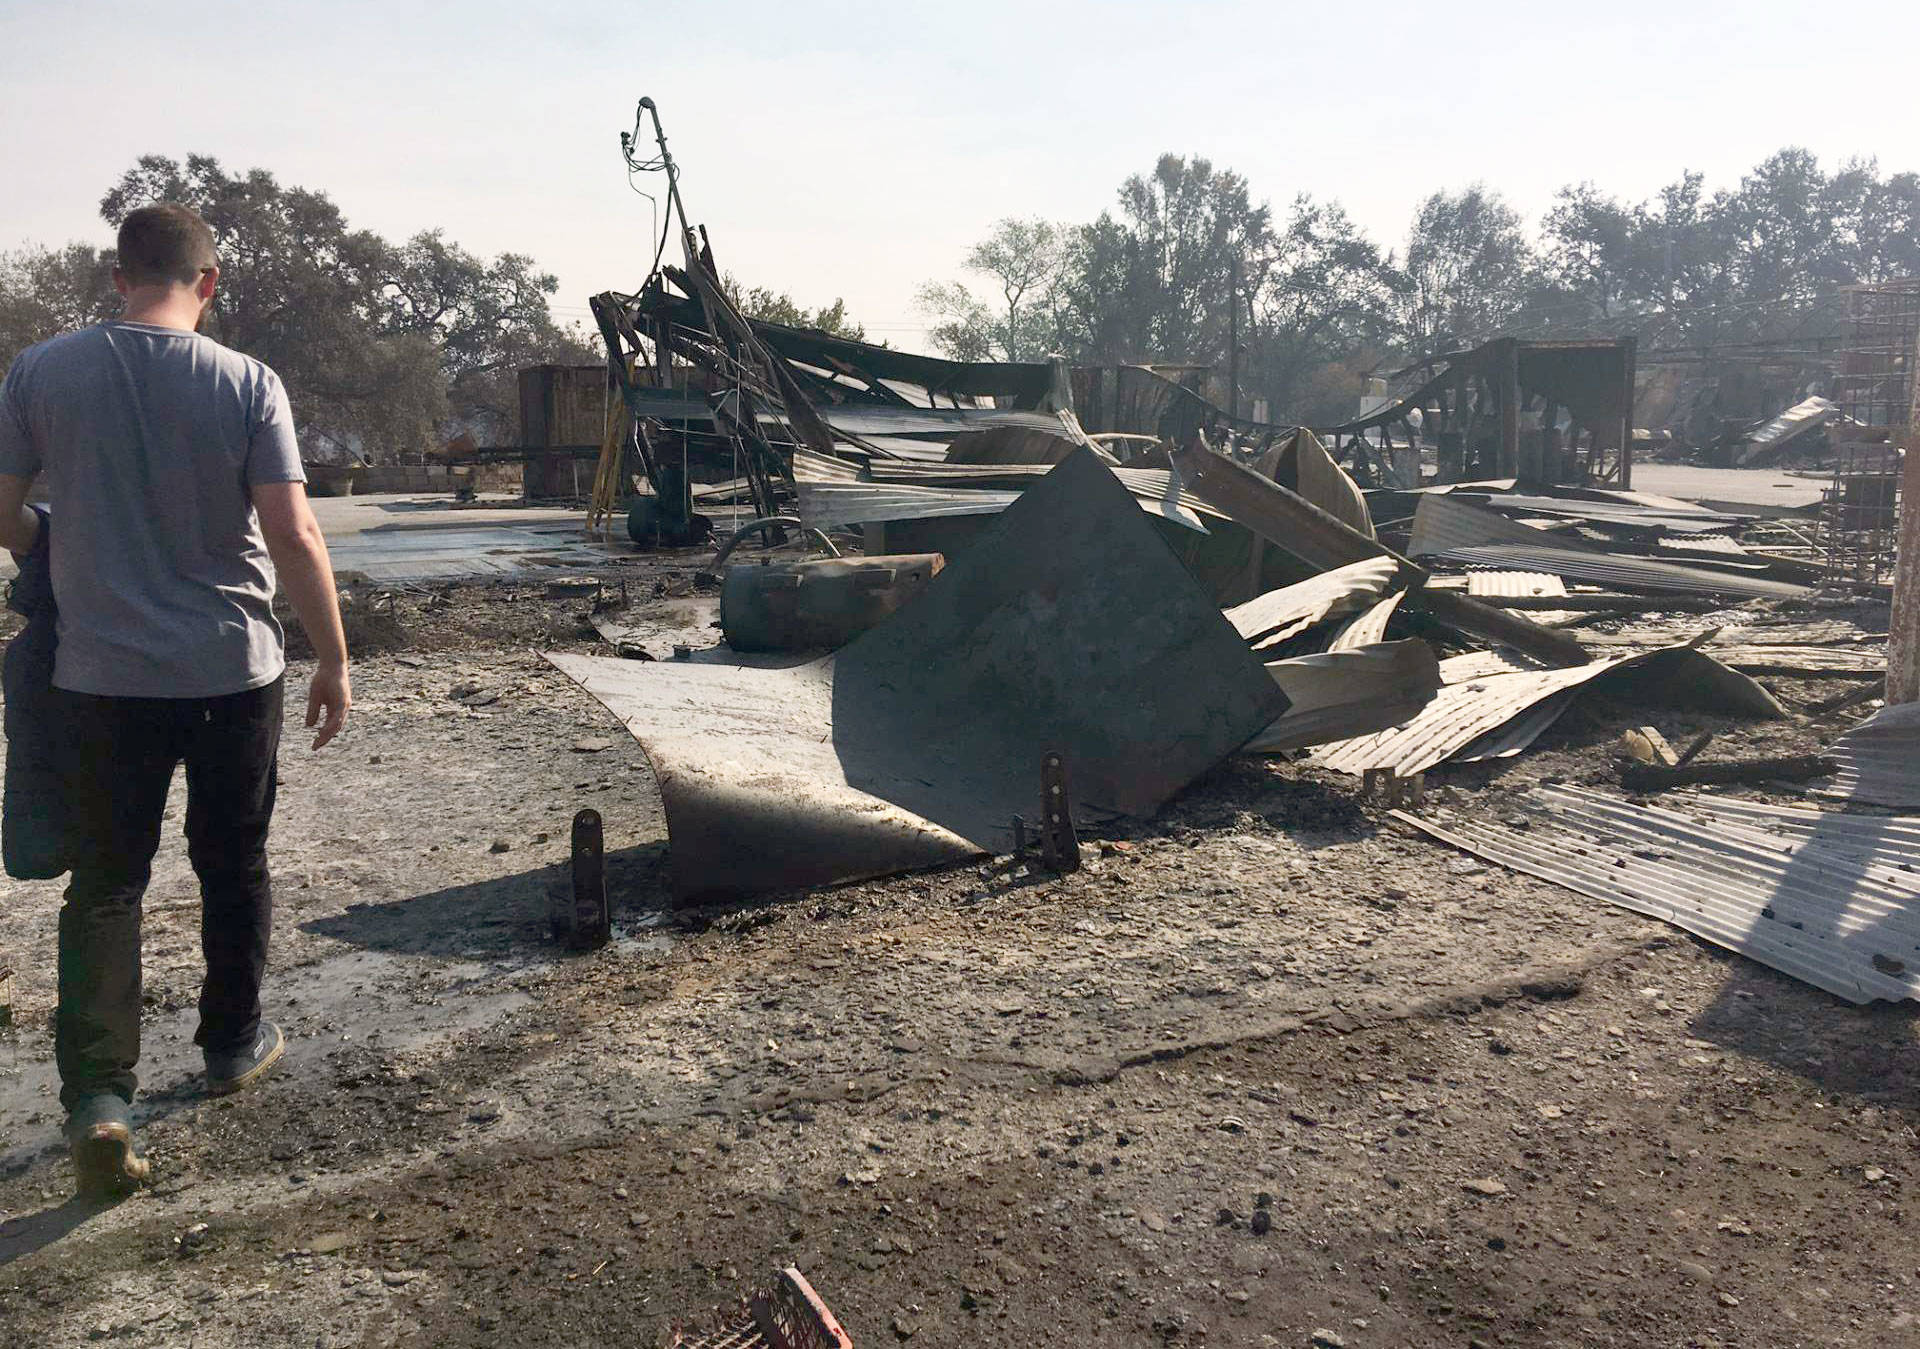 Ned Russell walks through the charred remains of his farm. Tonya Mosley/KQED